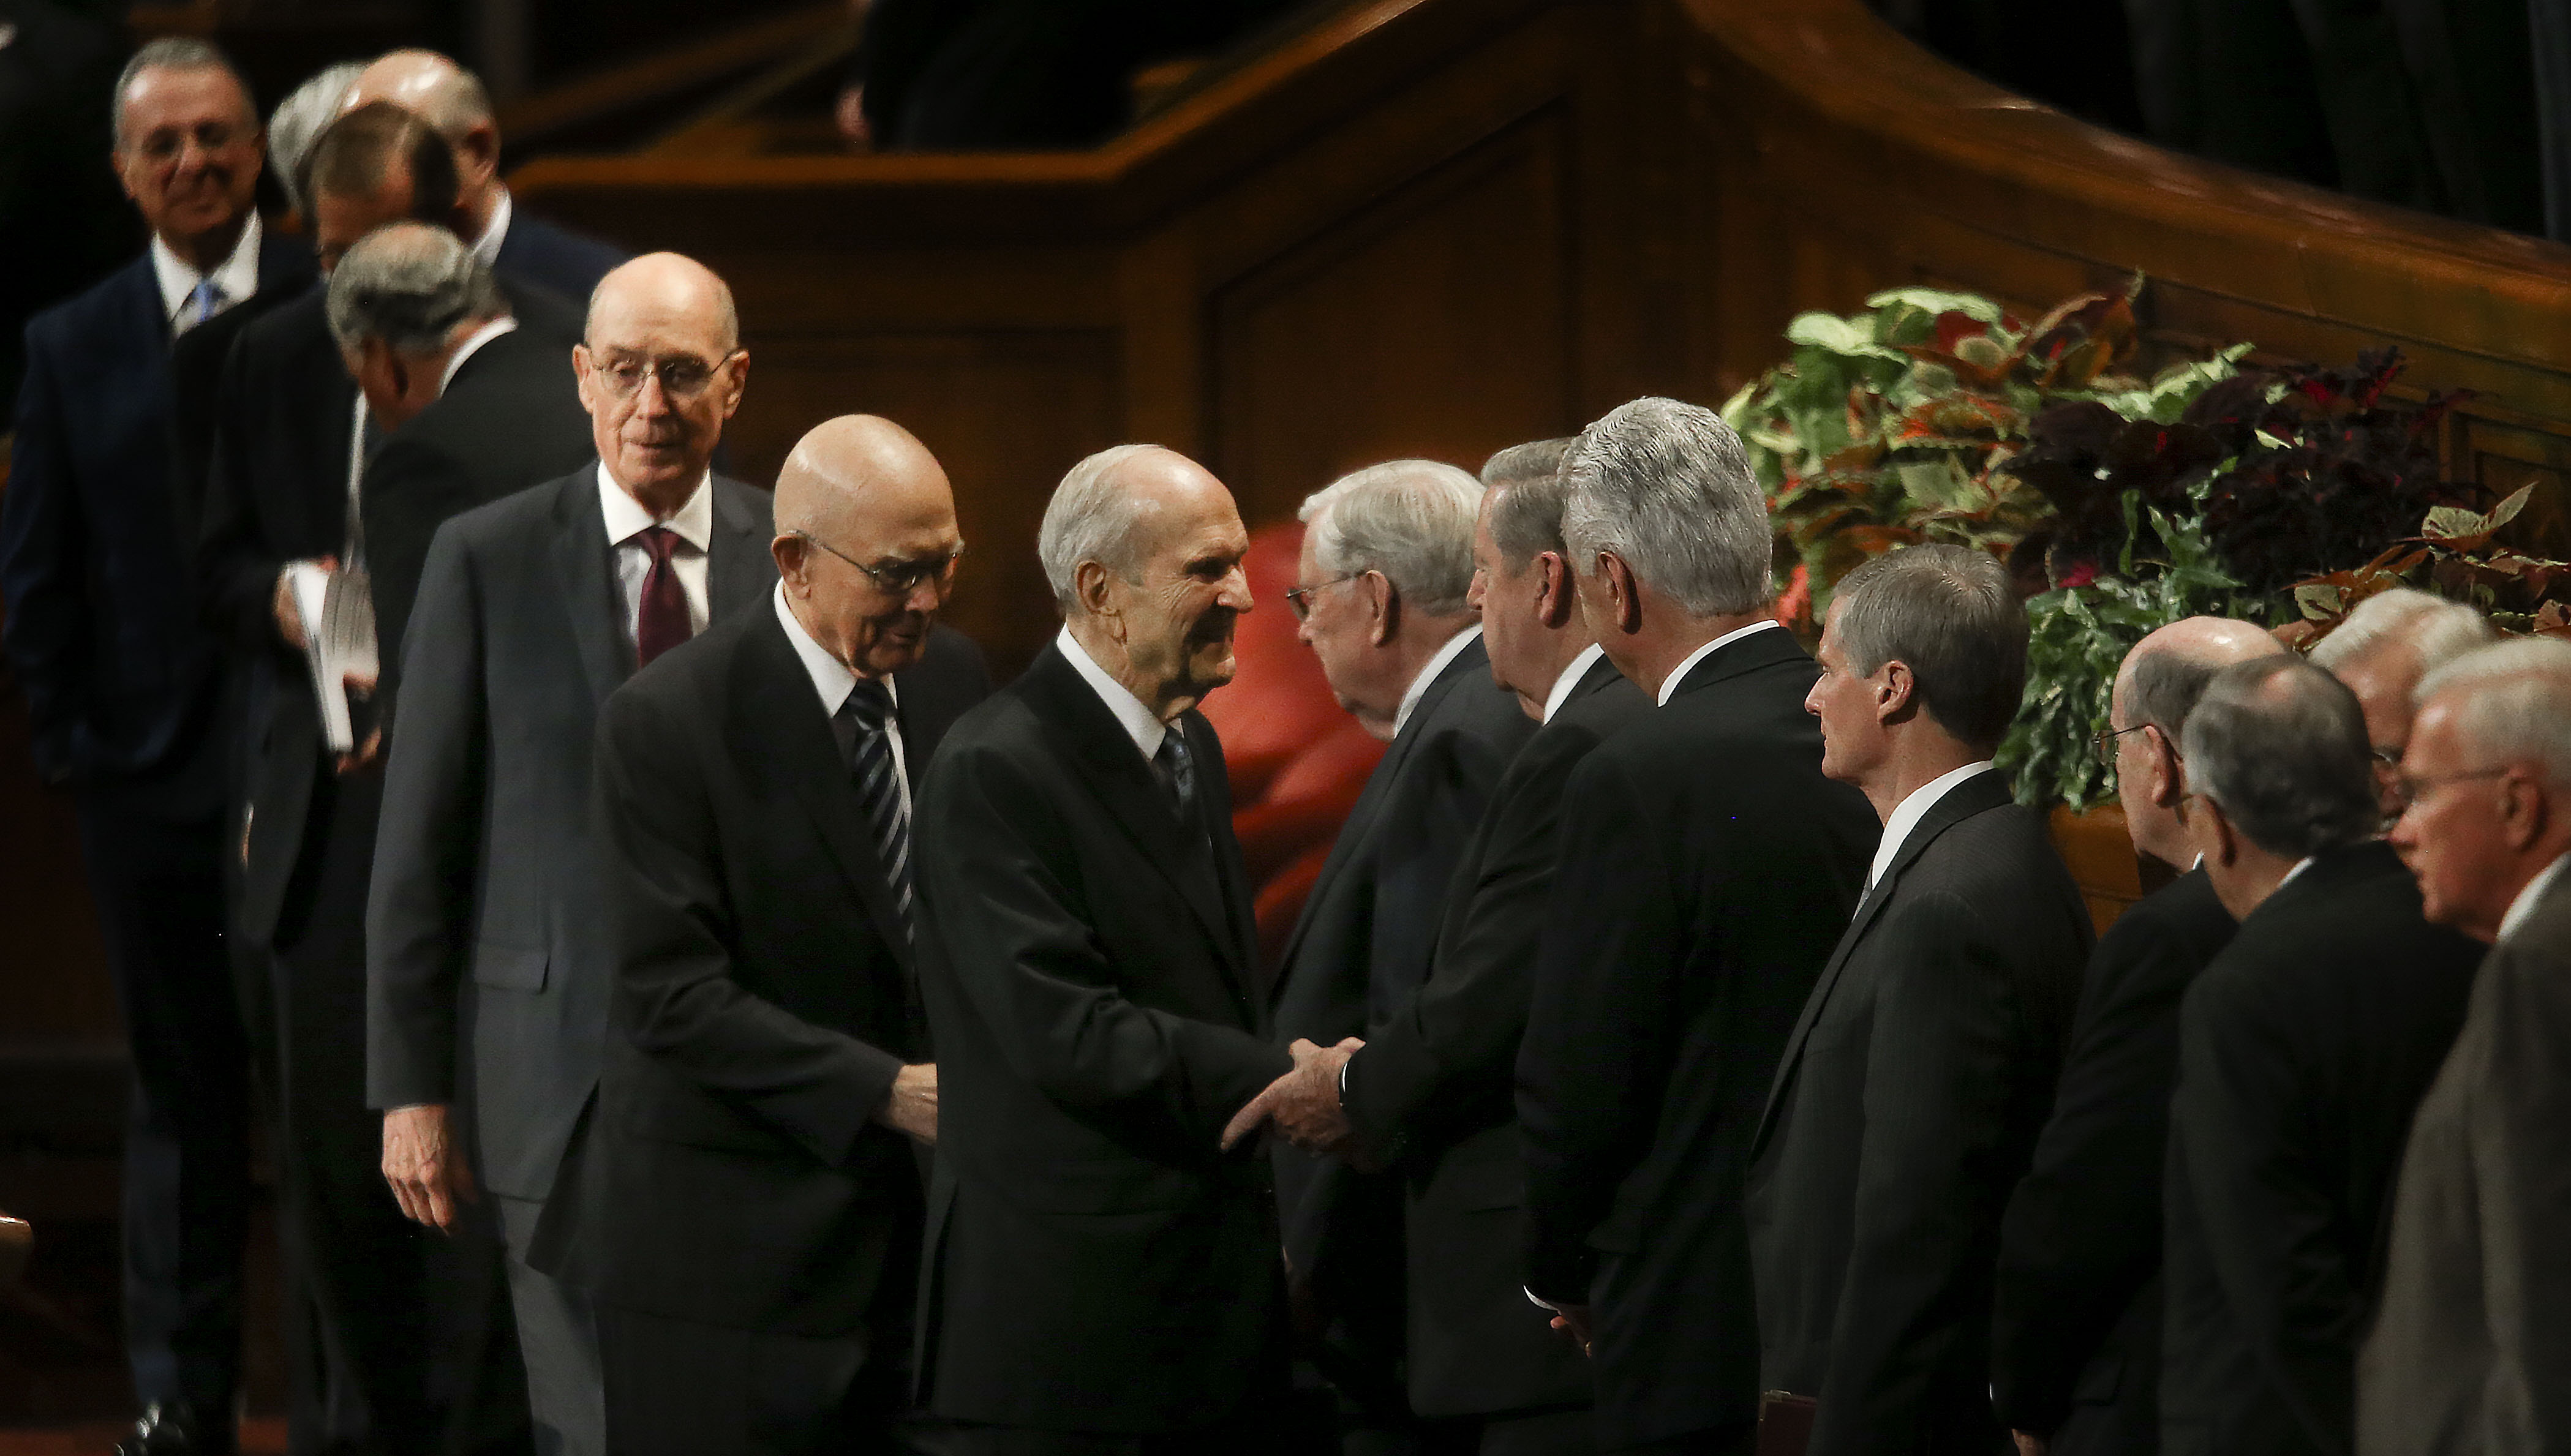 President Russell M. Nelson, center, shakes hands with general authorities after the Sunday afternoon session of the 189th Semiannual General Conference of The Church of Jesus Christ of Latter-day Saints in Salt Lake City on Sunday, Oct. 6, 2019. Following President Nelson is President Dallin H. Oaks, first counselor in the First Presidency, and President Henry B. Eyring, second counselor in the First Presidency.